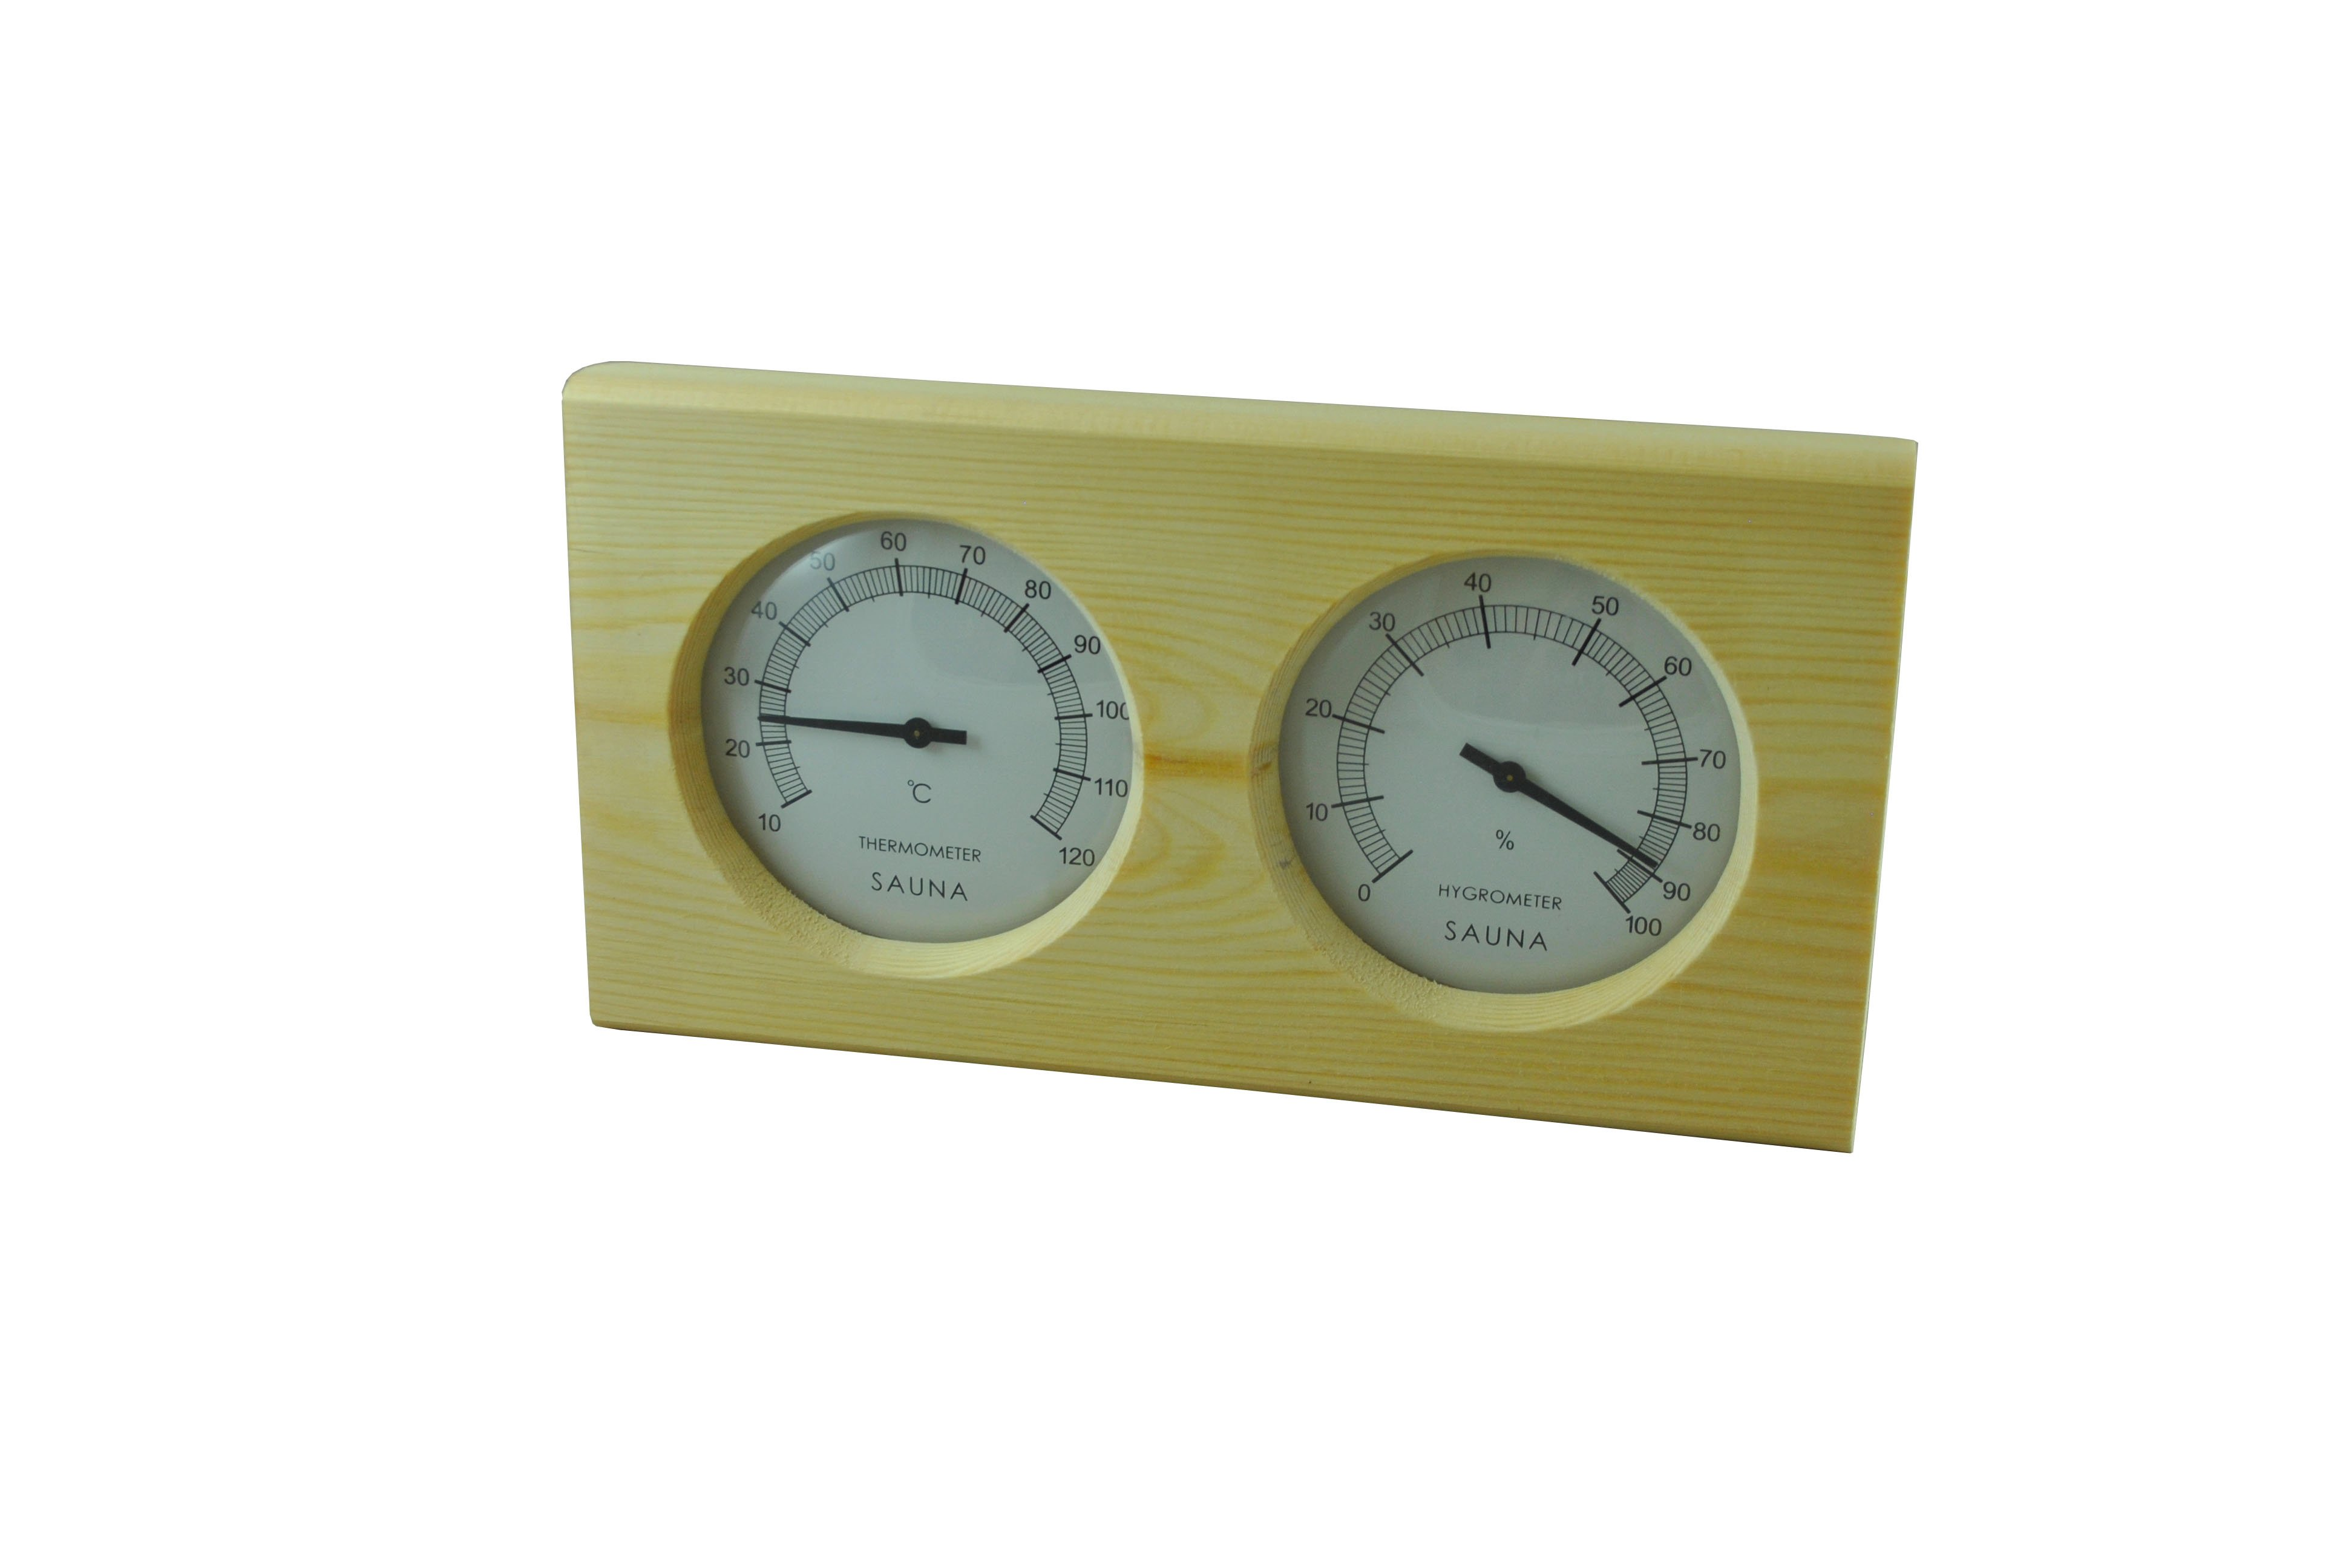 Pine Sauna Thermometer And Hygrometer Celsius Heaters4saunas